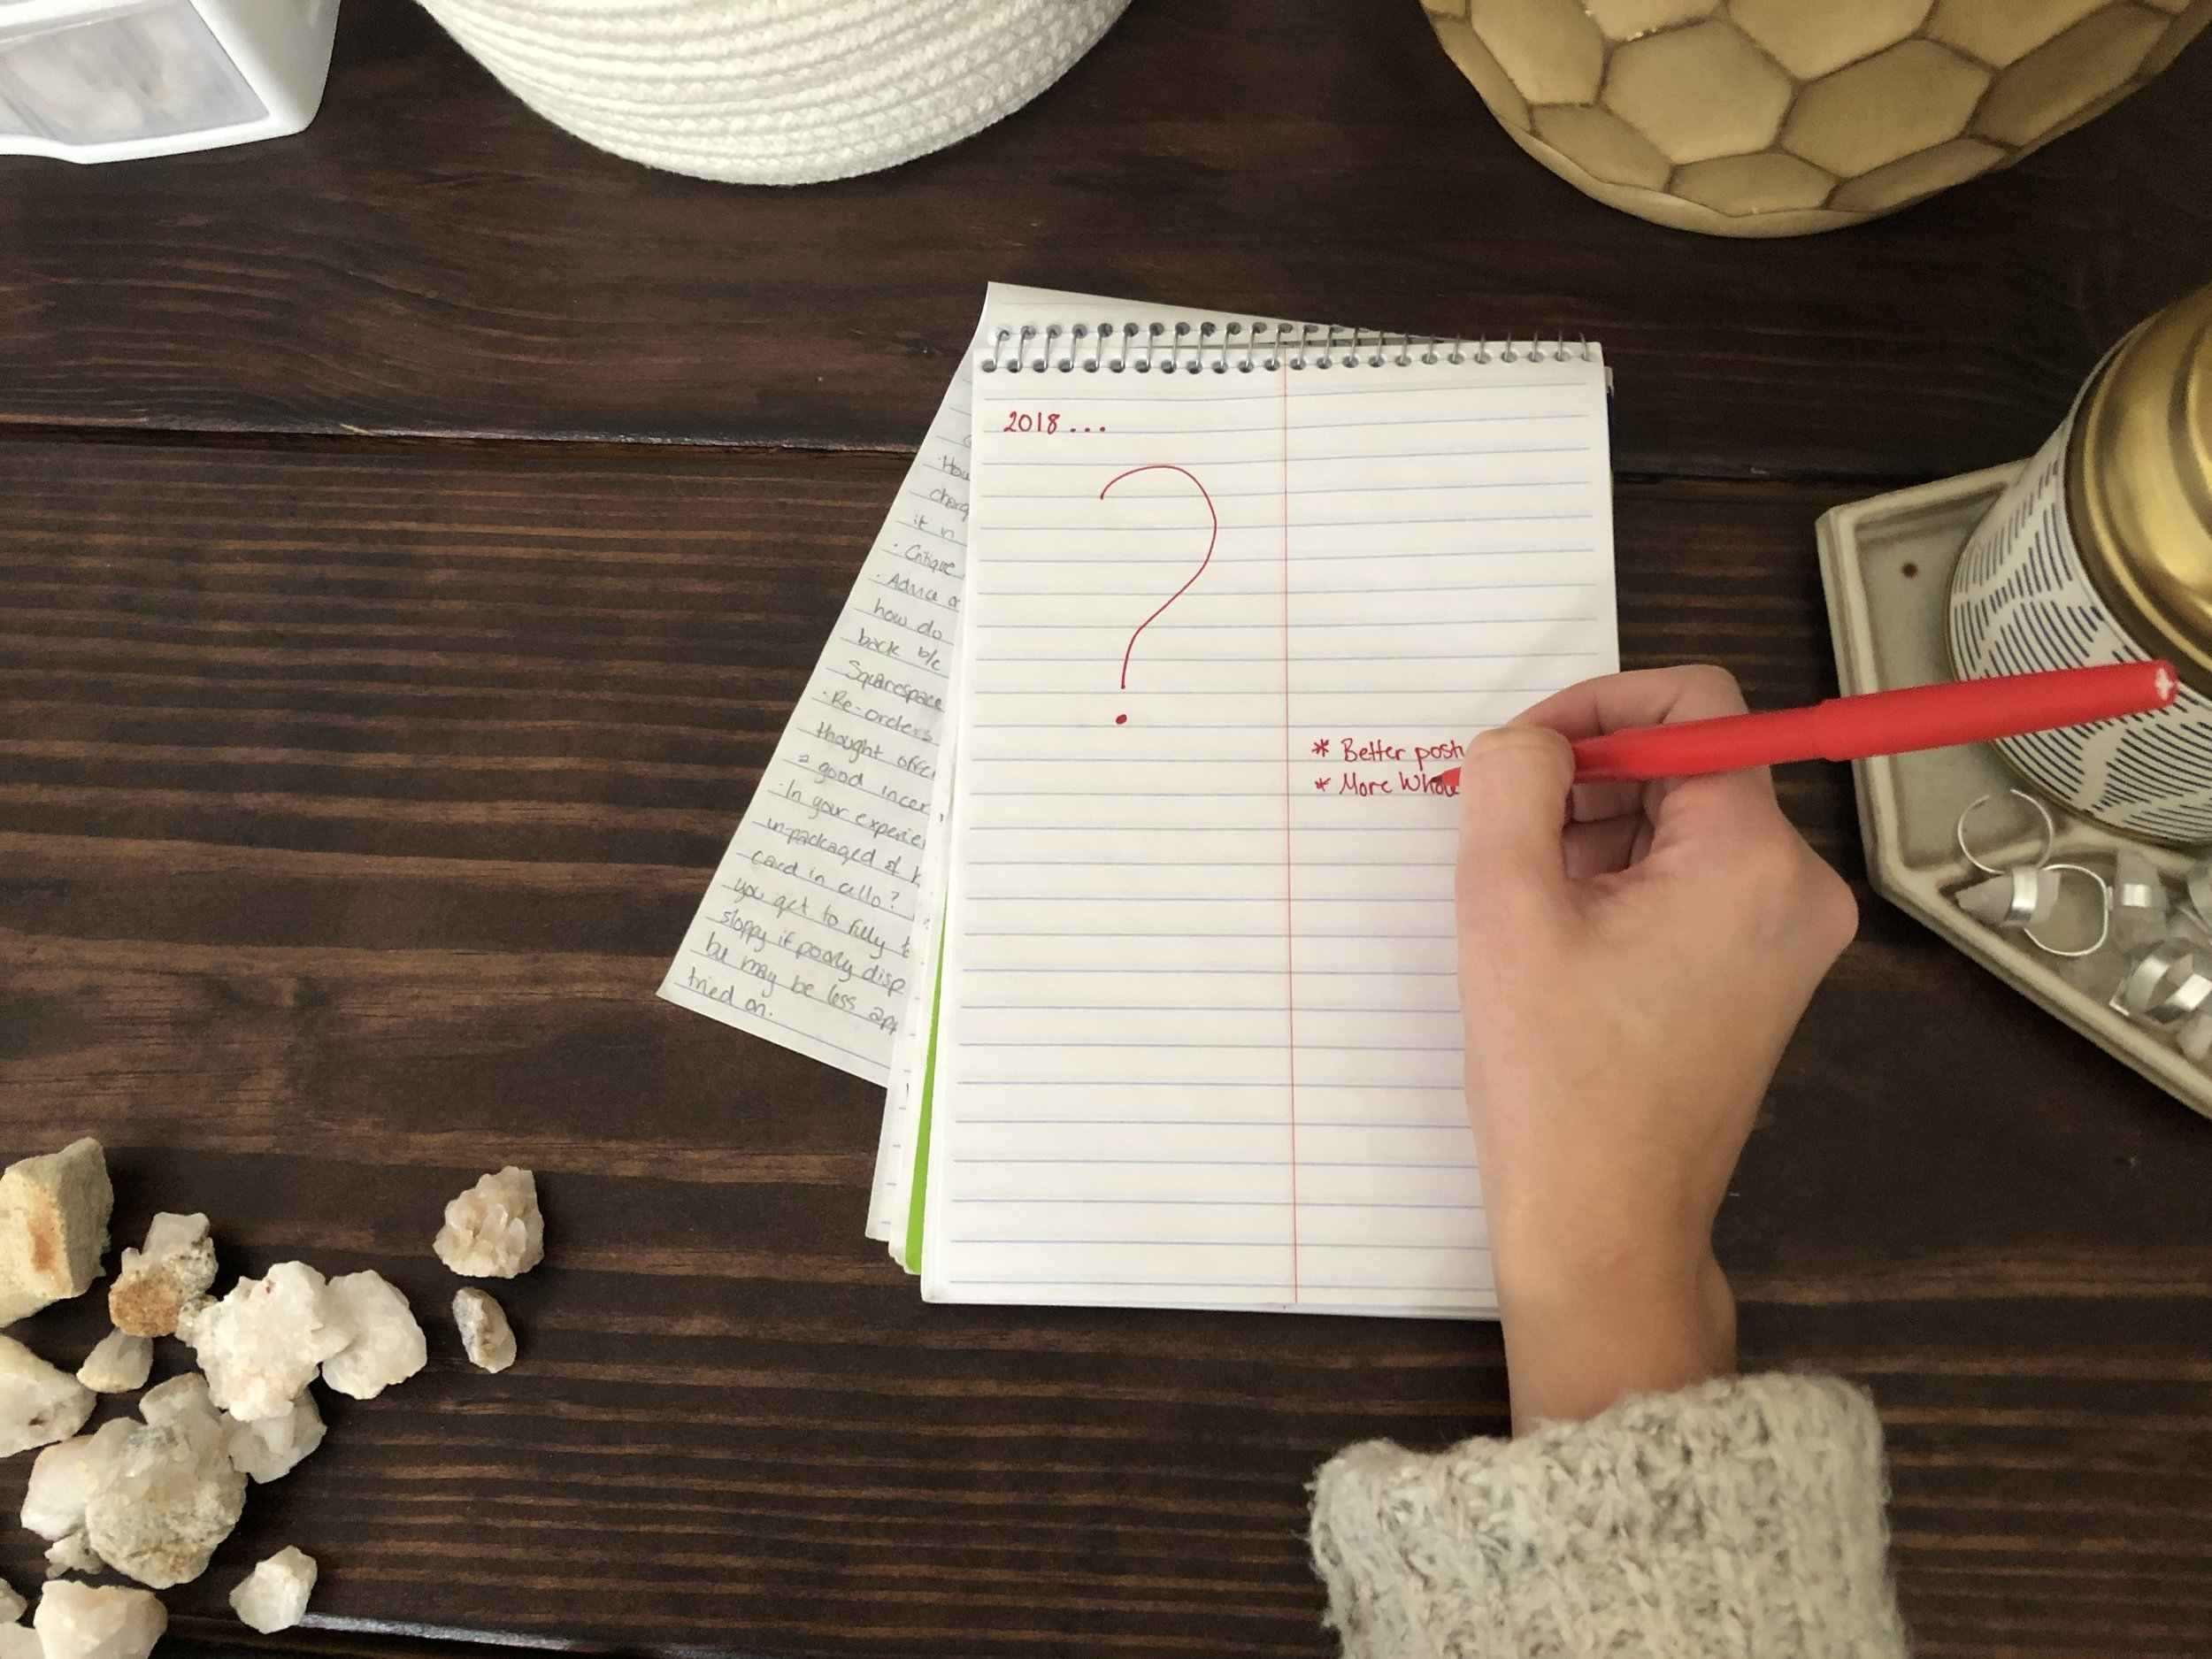 Writing Resolutions or Waiting